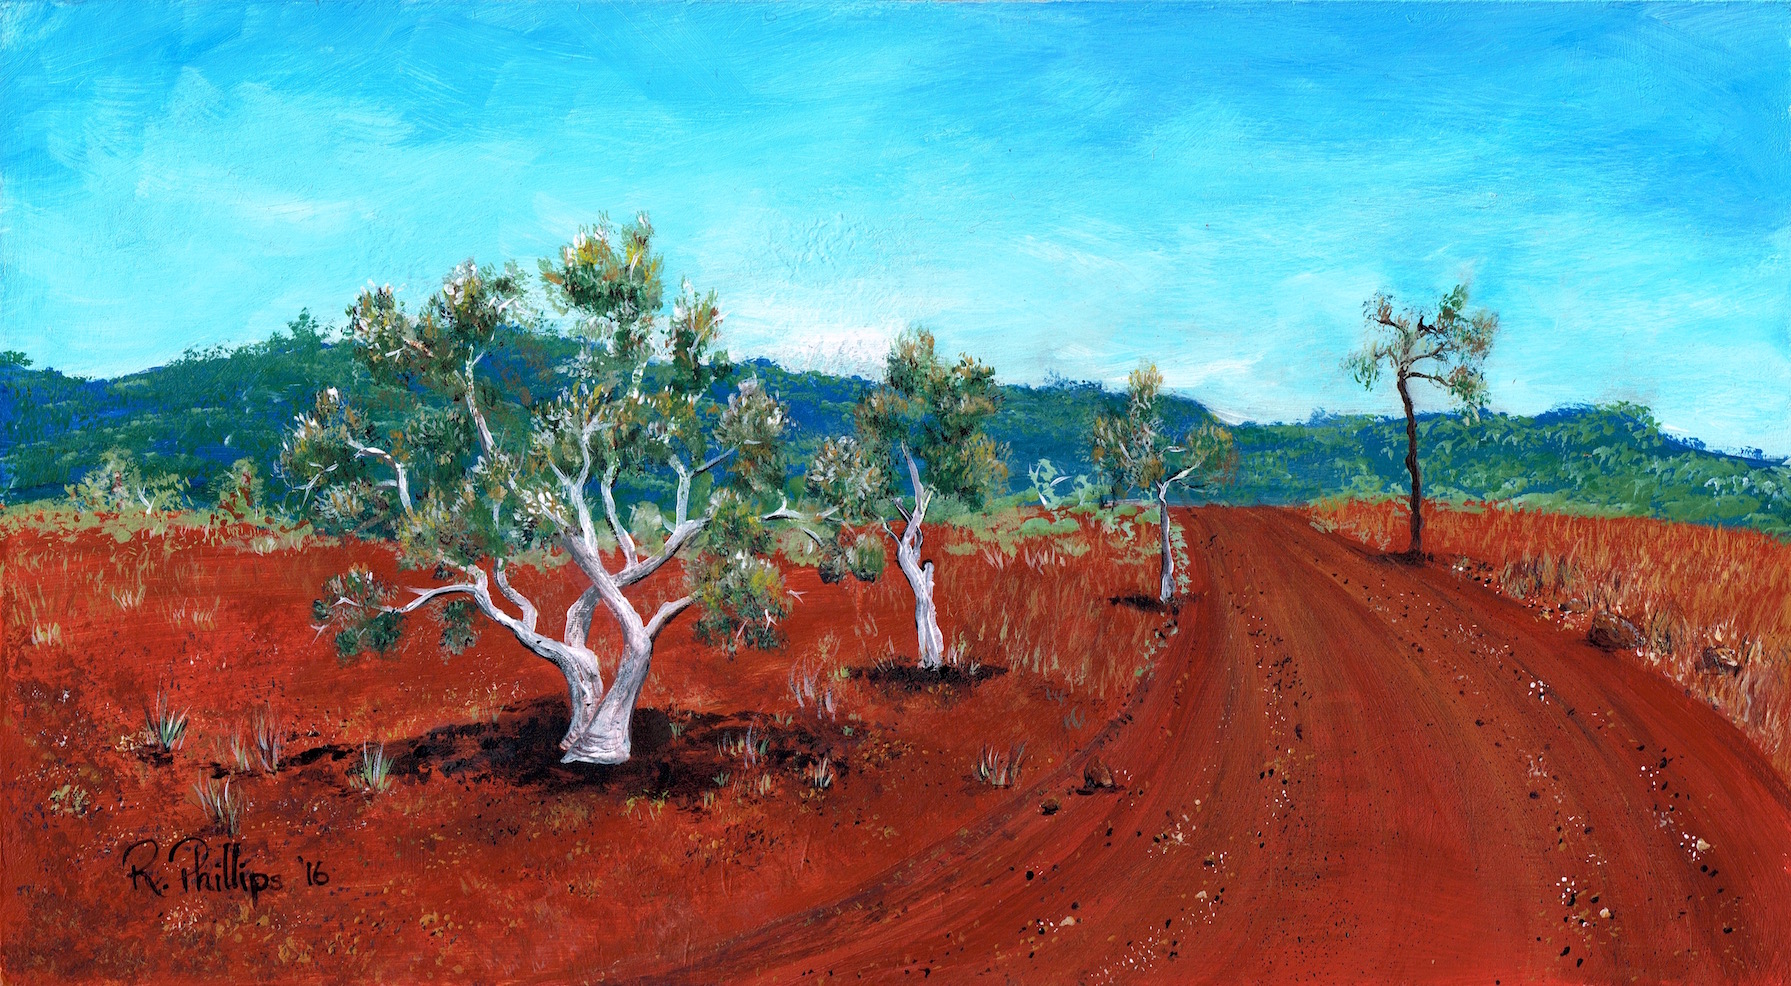 Miniature Landscape painting of stark white ghost gums against the red earth of the Australian Outback